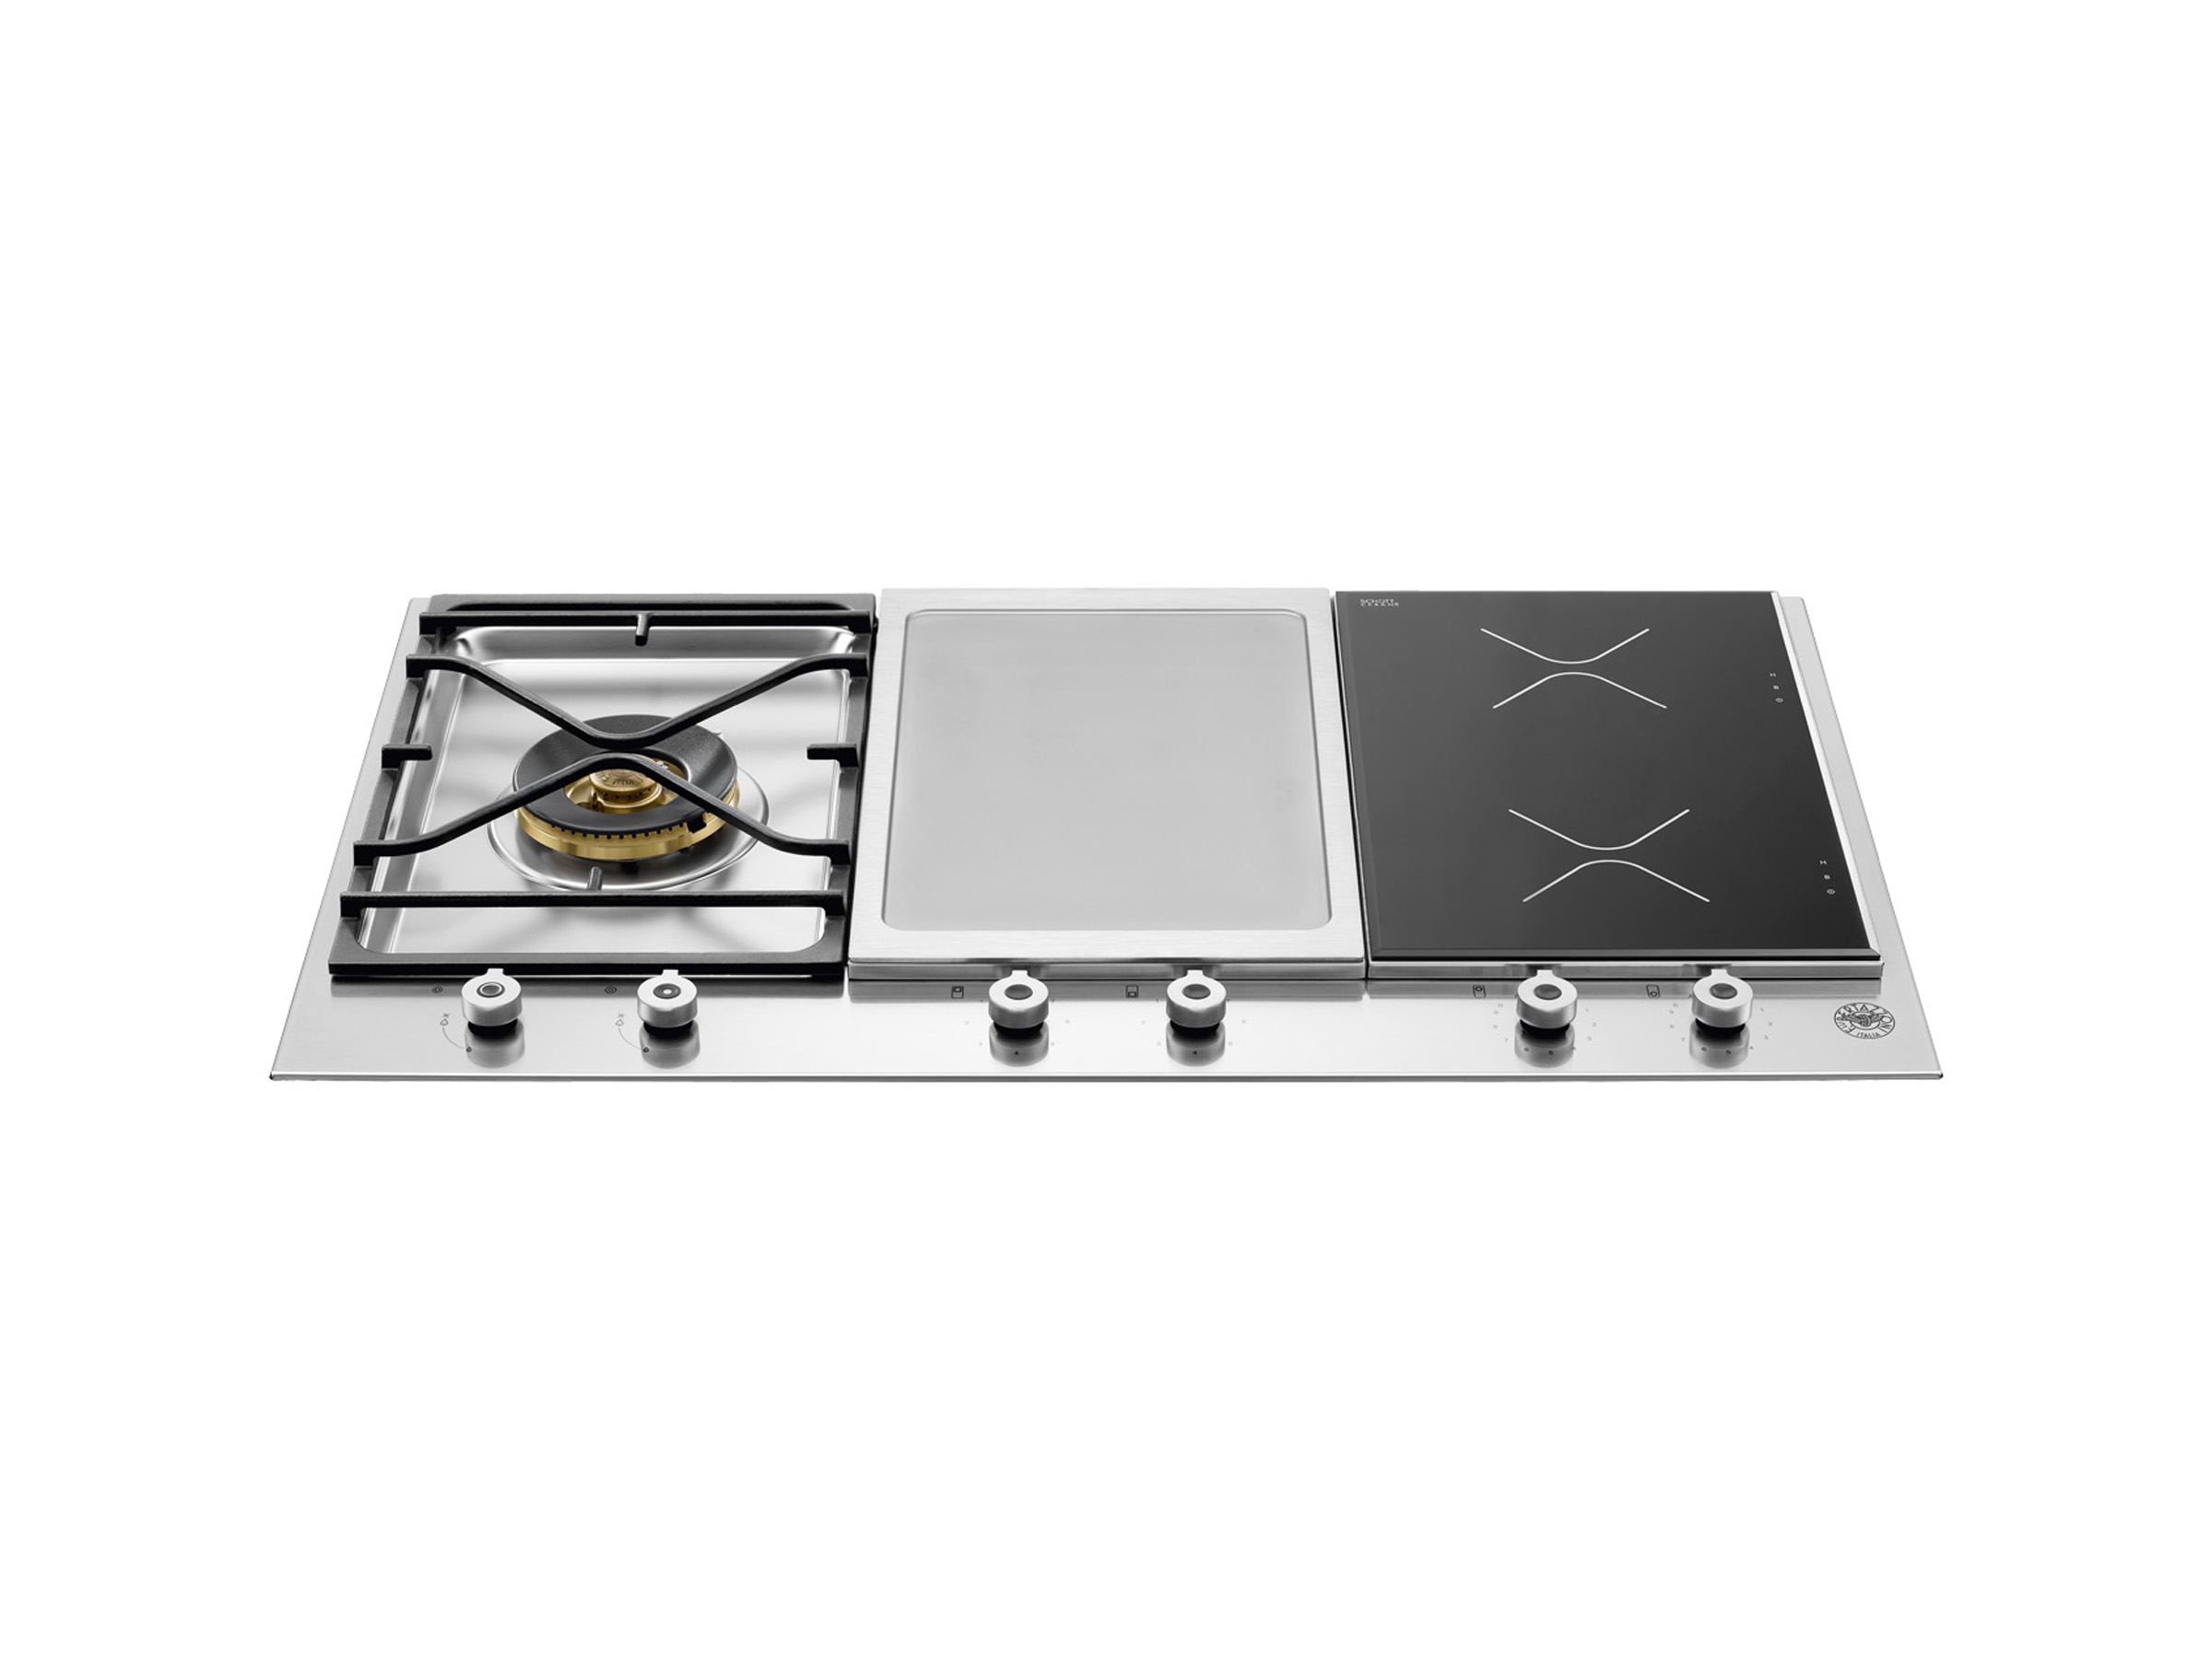 90 3-Segment Gas/Griddle/Induction hob | Bertazzoni - Stainless